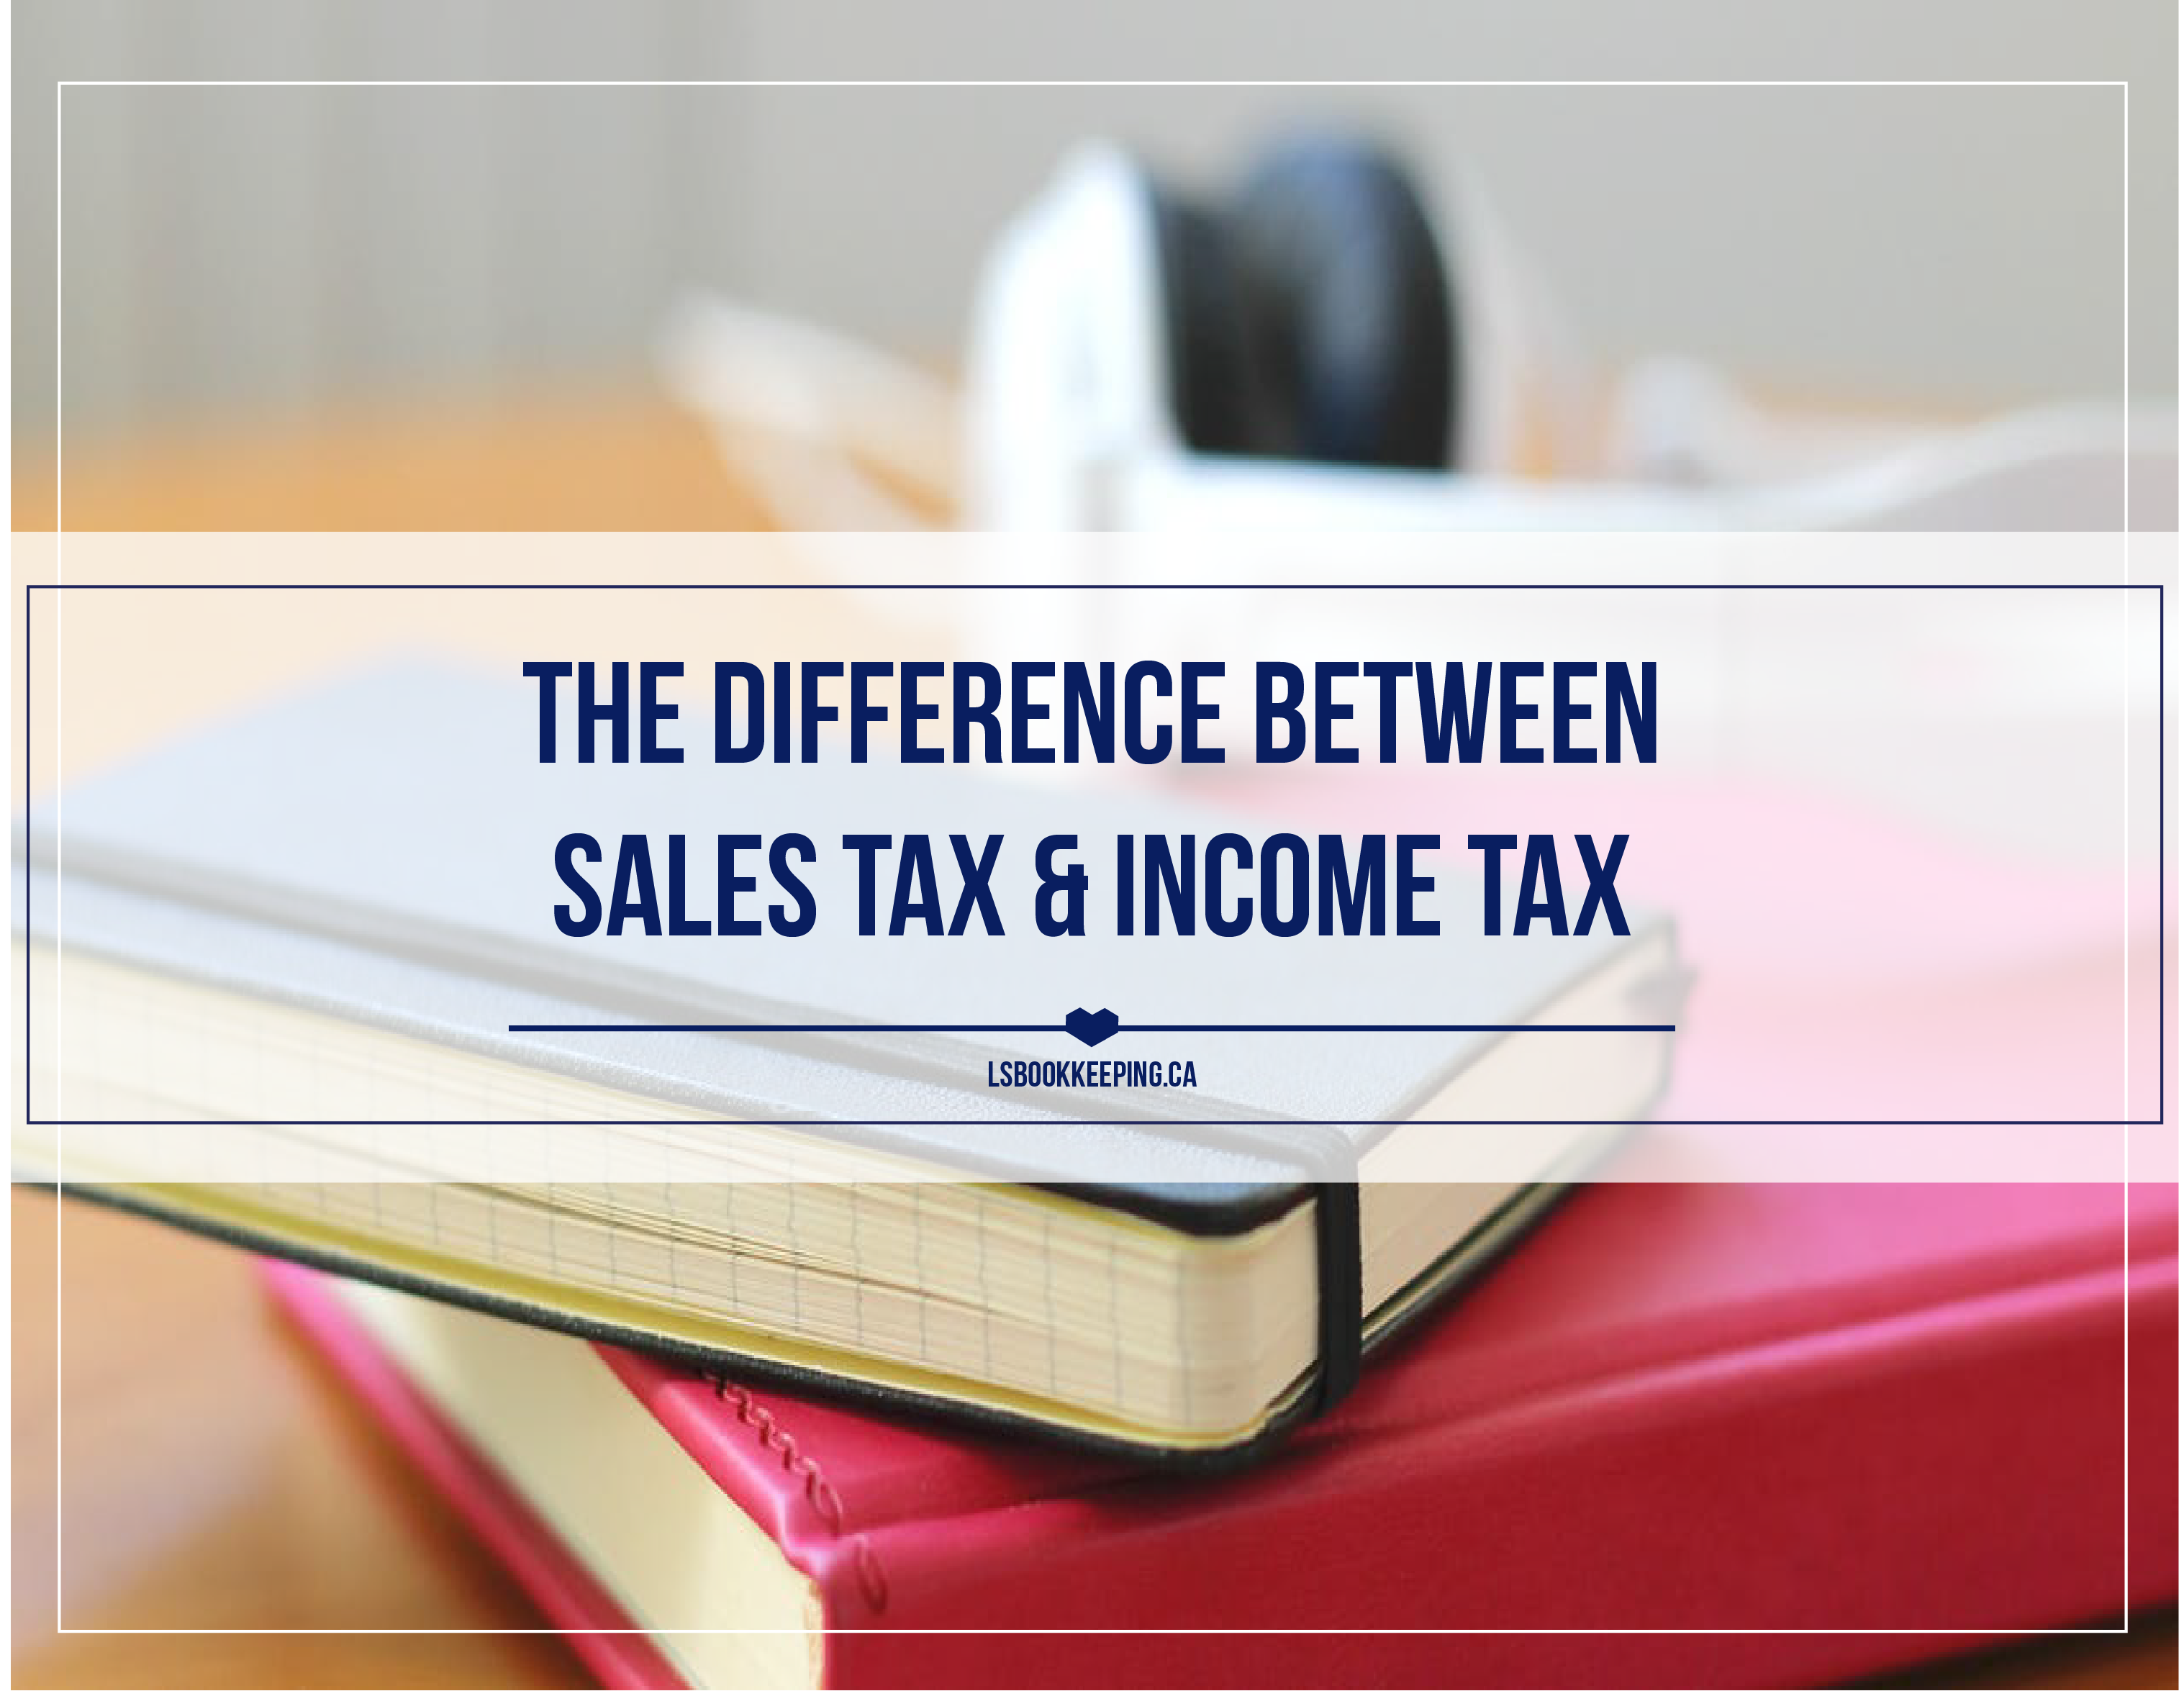 Nafta Commercial Invoice Pdf Taxes Archives  Lisa Savage Bookkeeping Services Invoices Samples Free Pdf with Online Invoicing Services Excel Why You Need To Know The Difference Between Sales Tax And Income Tax Water Damage Invoice Sample Pdf